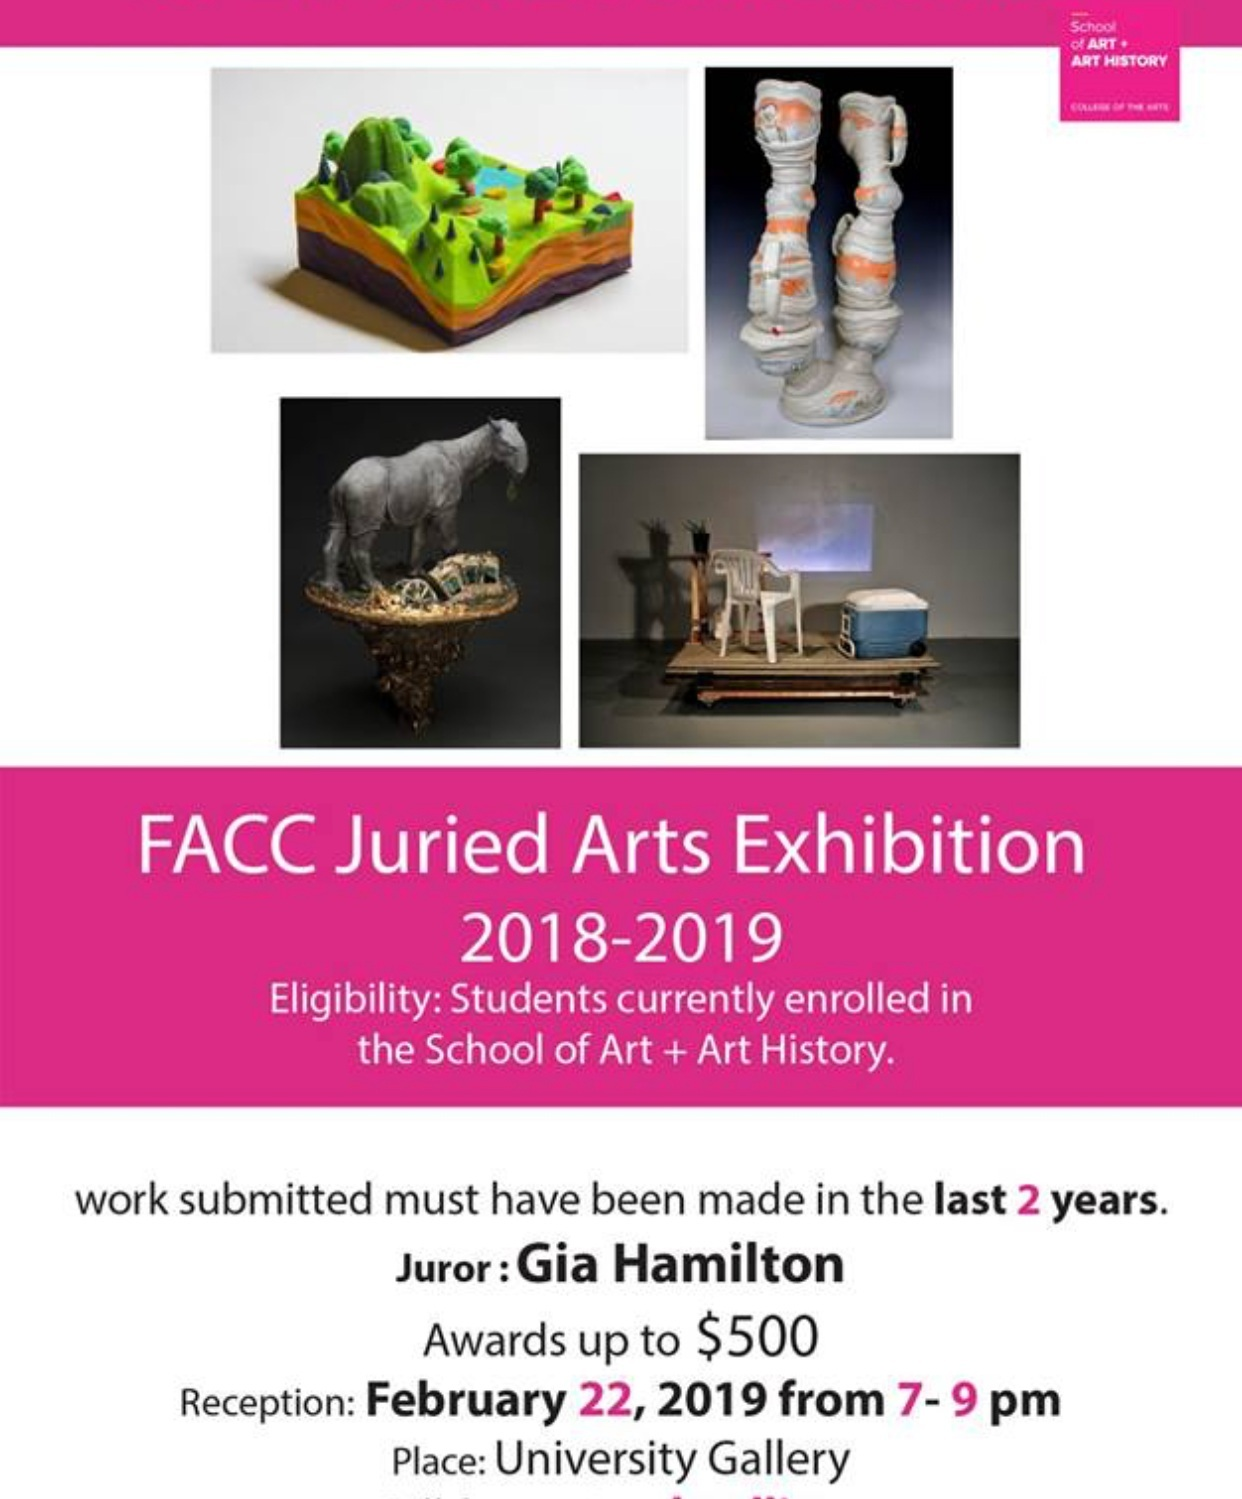 FACC Juried Arts Exhibition